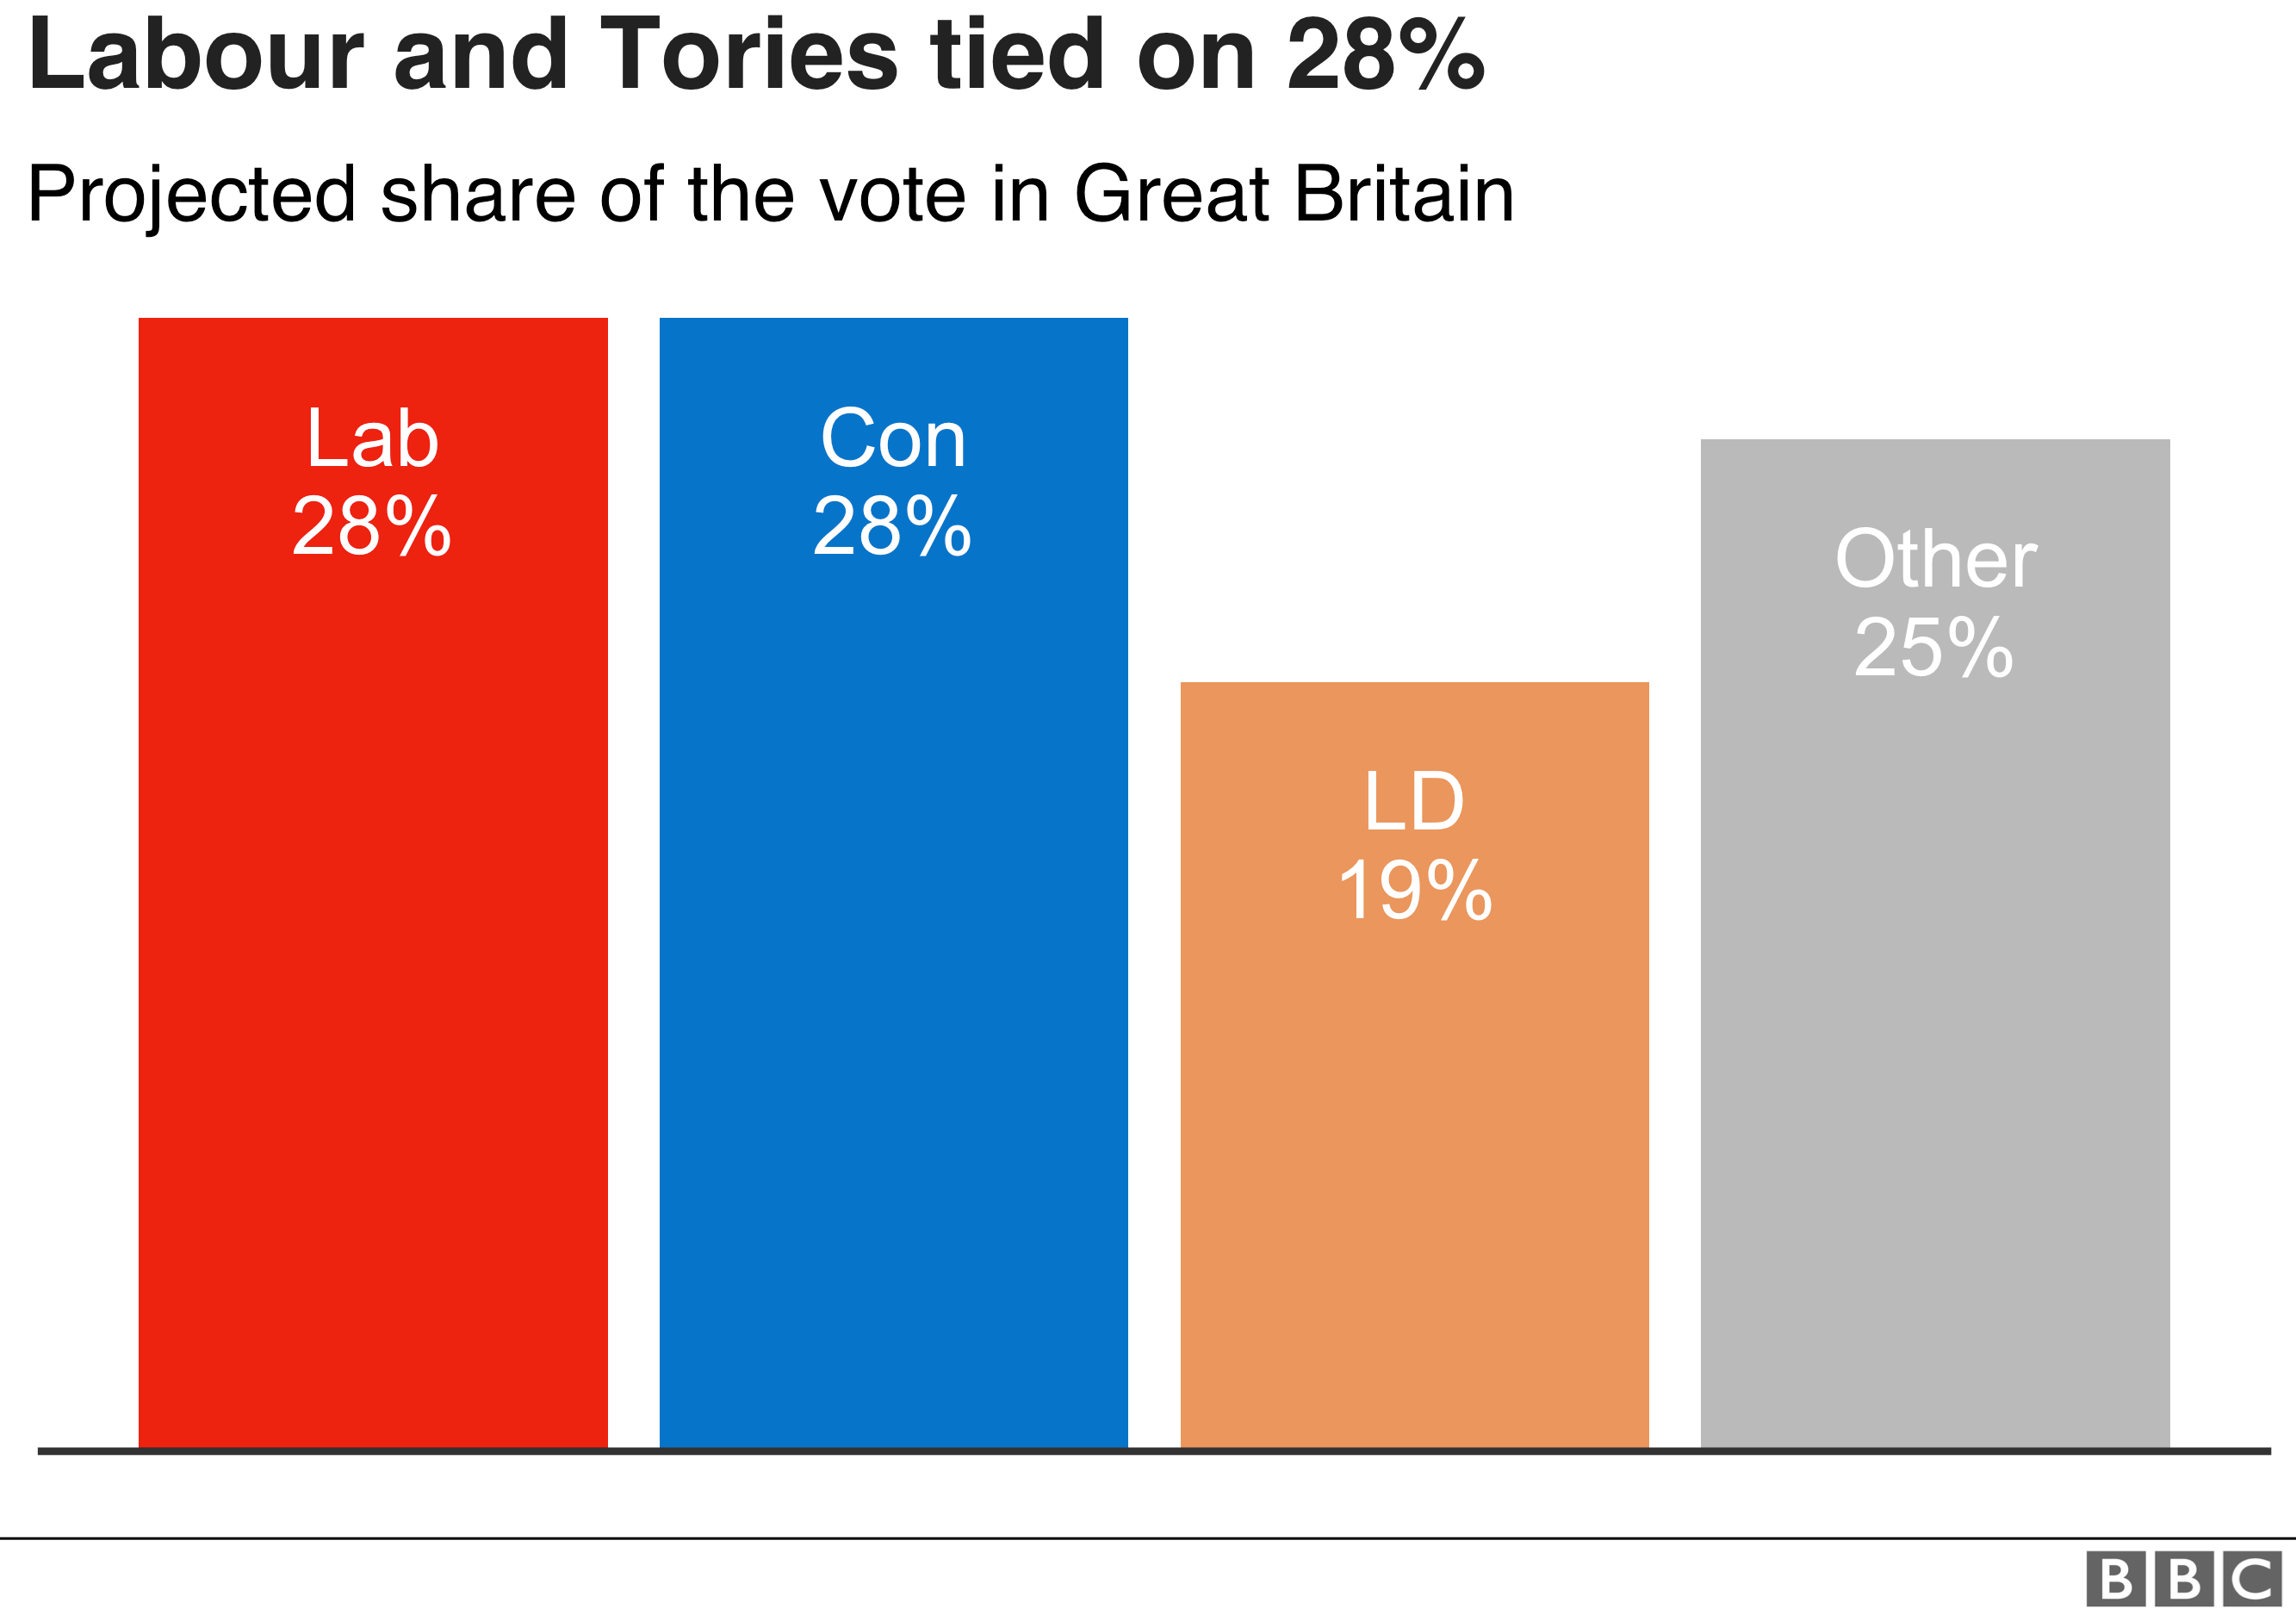 Chart showing the projected national share, putting both the Conservatives and Labour on 28% and the Lib Dems ad 19%.